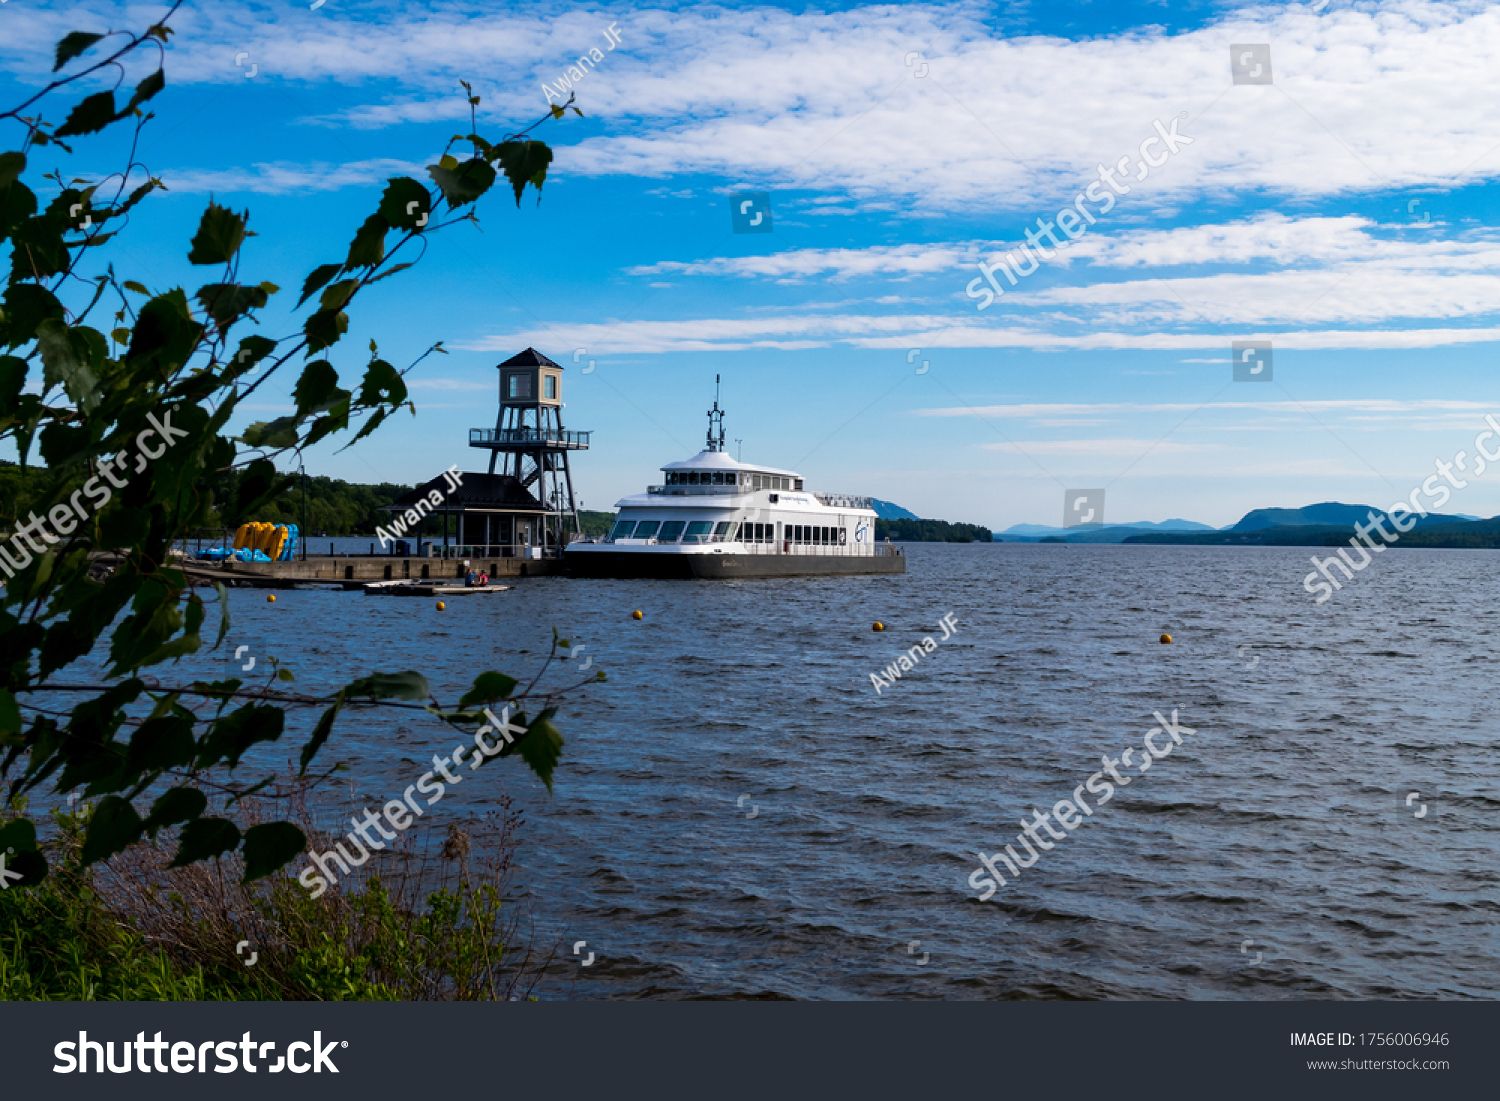 stock-photo-magog-canada-june-view-of-a-